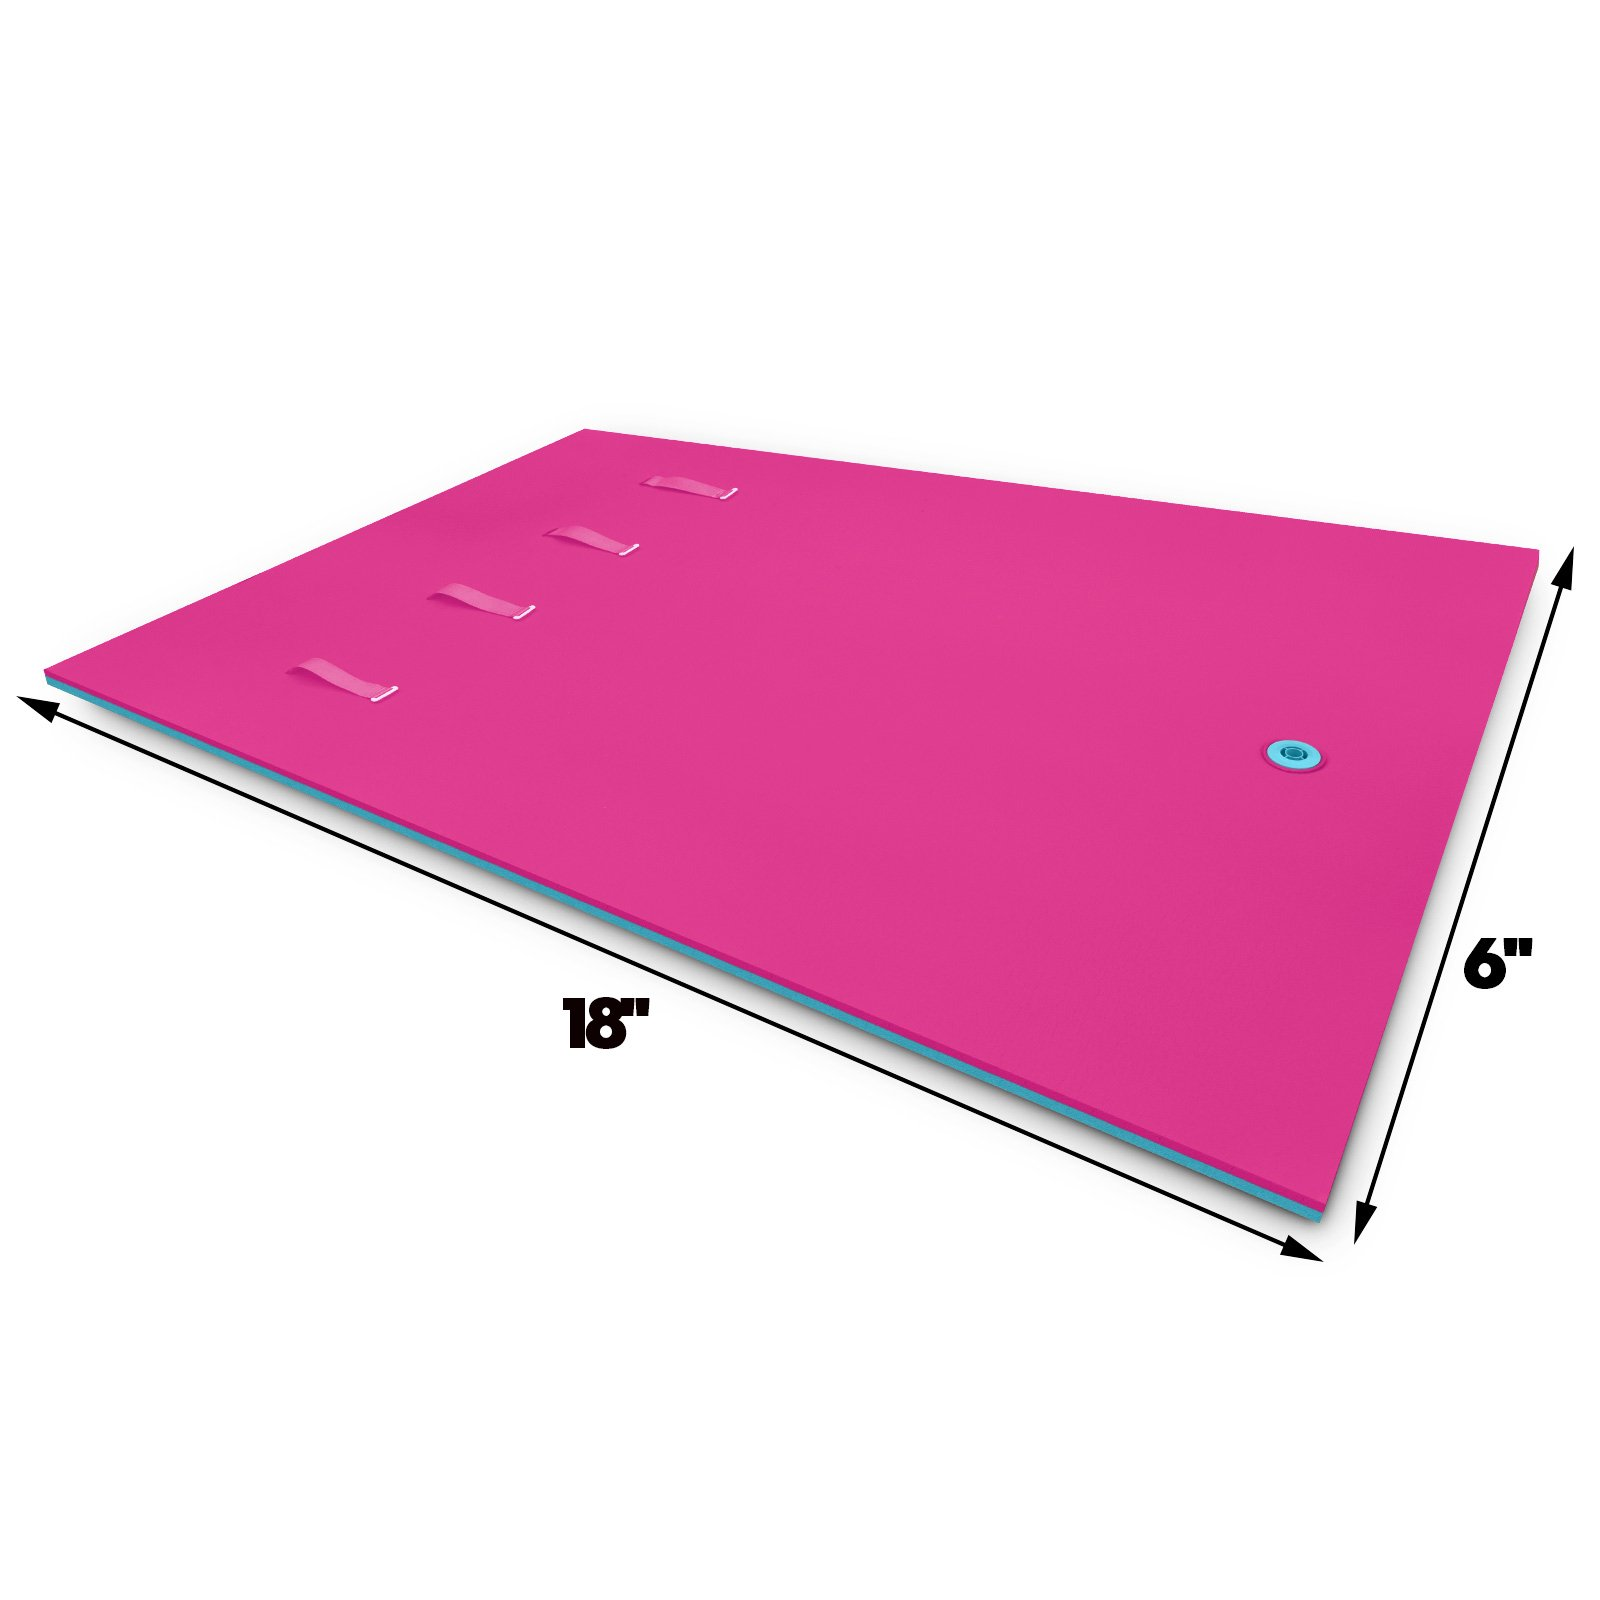 Popsport Floating Water Mat Series Floating Foam Pad Water Recreation and Relaxing in Pool/Beach/Lake Water Floating Mat with DIY Head Pillow for Adults and Kids (Pink&Blue, 18X6FT) by Popsport (Image #2)